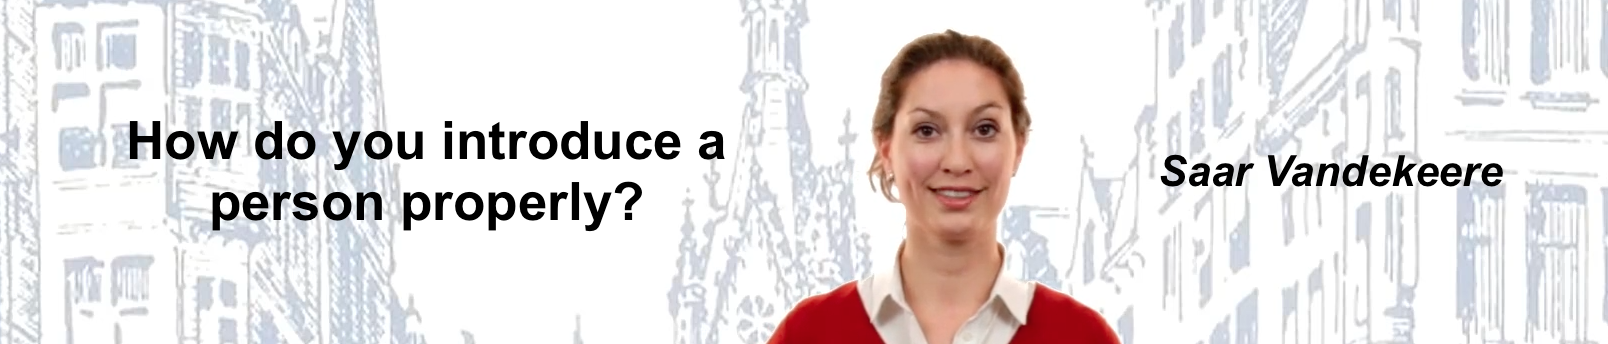 Public Speaking Tip – How do you introduce a person properly?